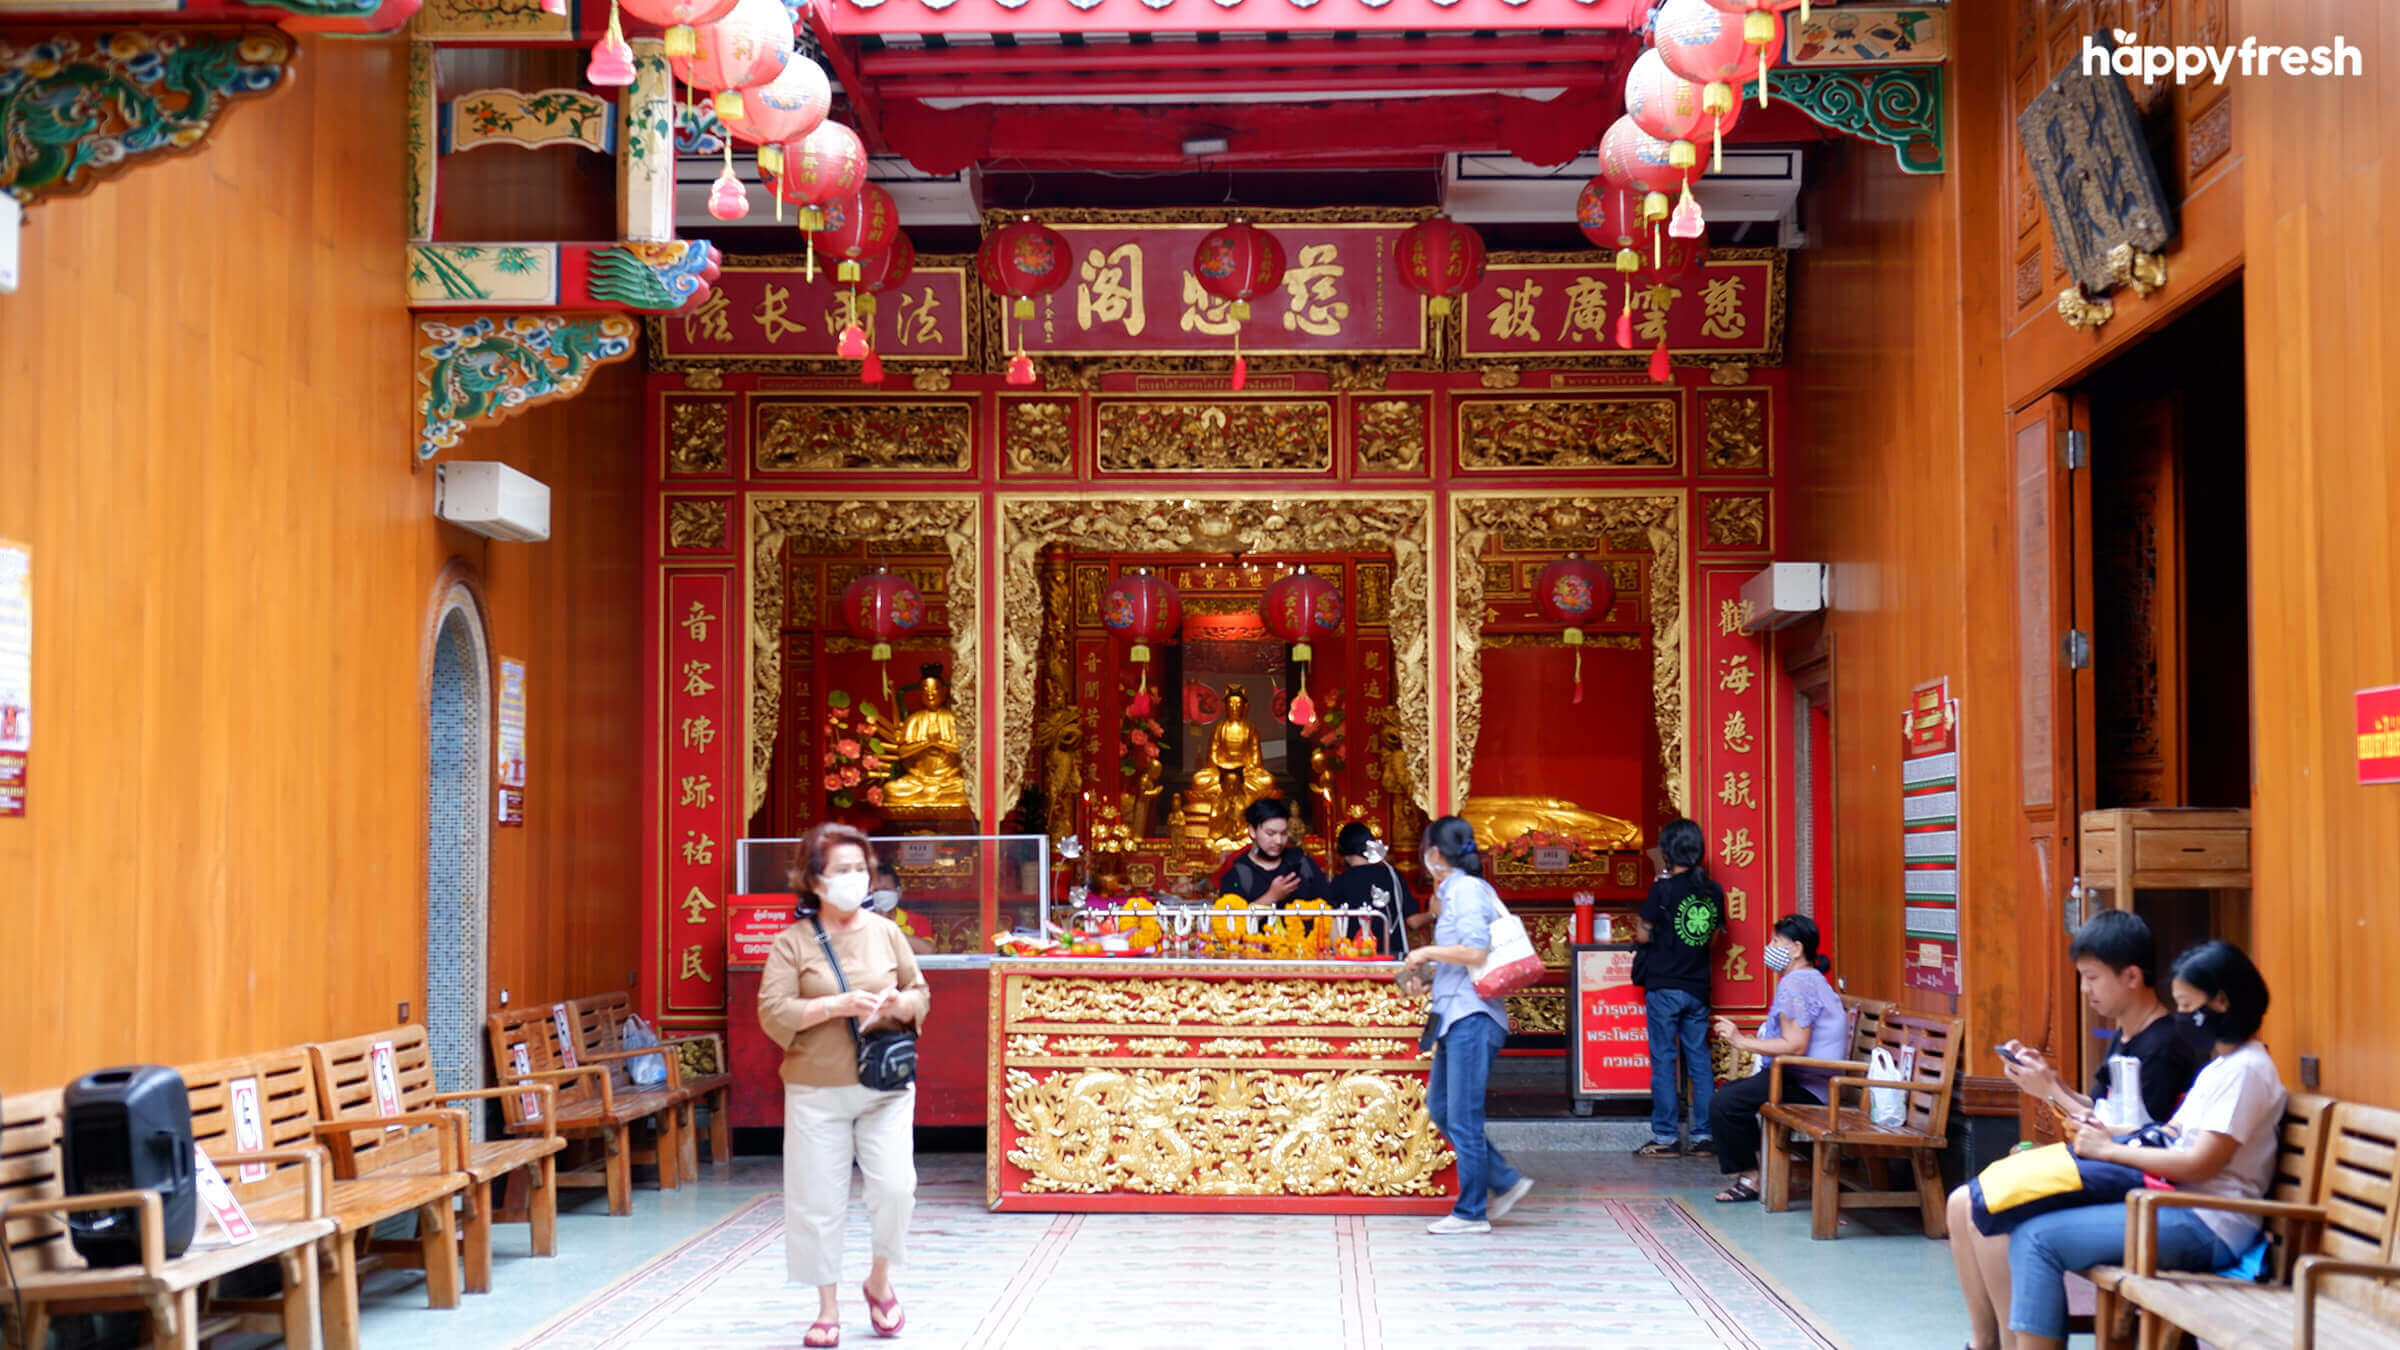 HappyFresh_Visit_6_Chinese_Shrines_In_Chinatown_Wat_Mangkon_4